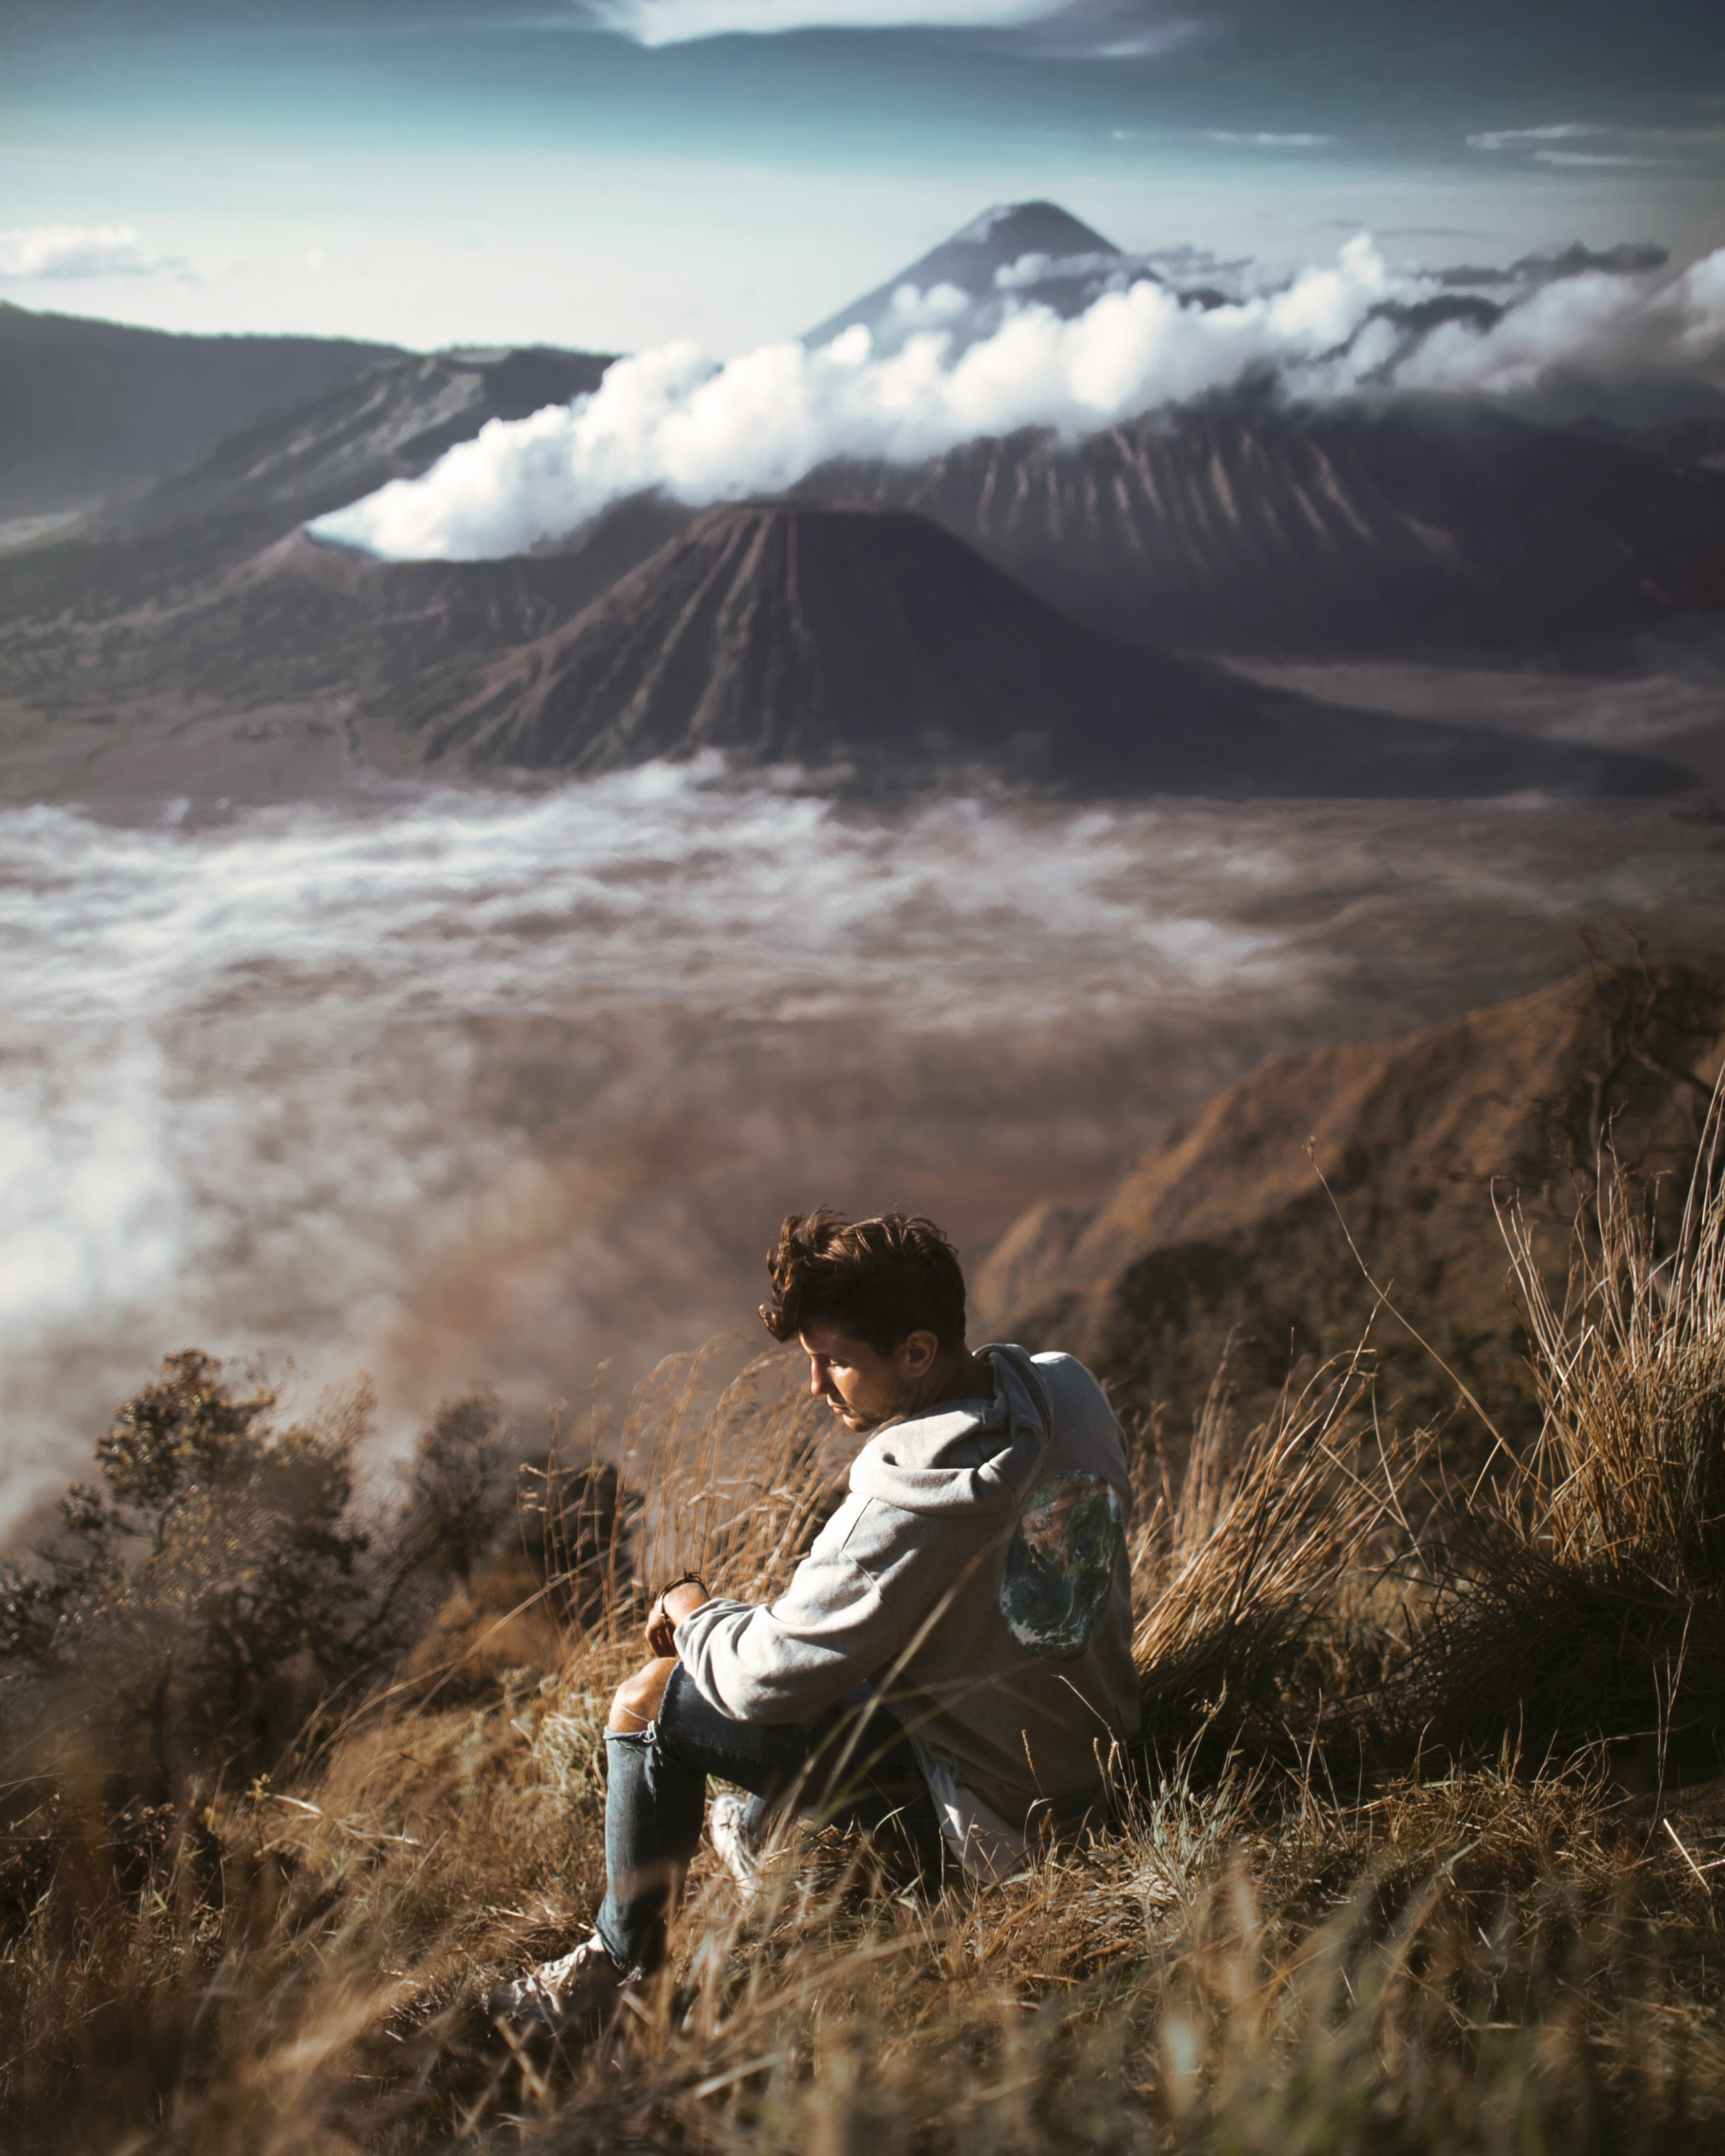 Lost LeBlanc overlooking Mount Bromo, East Java